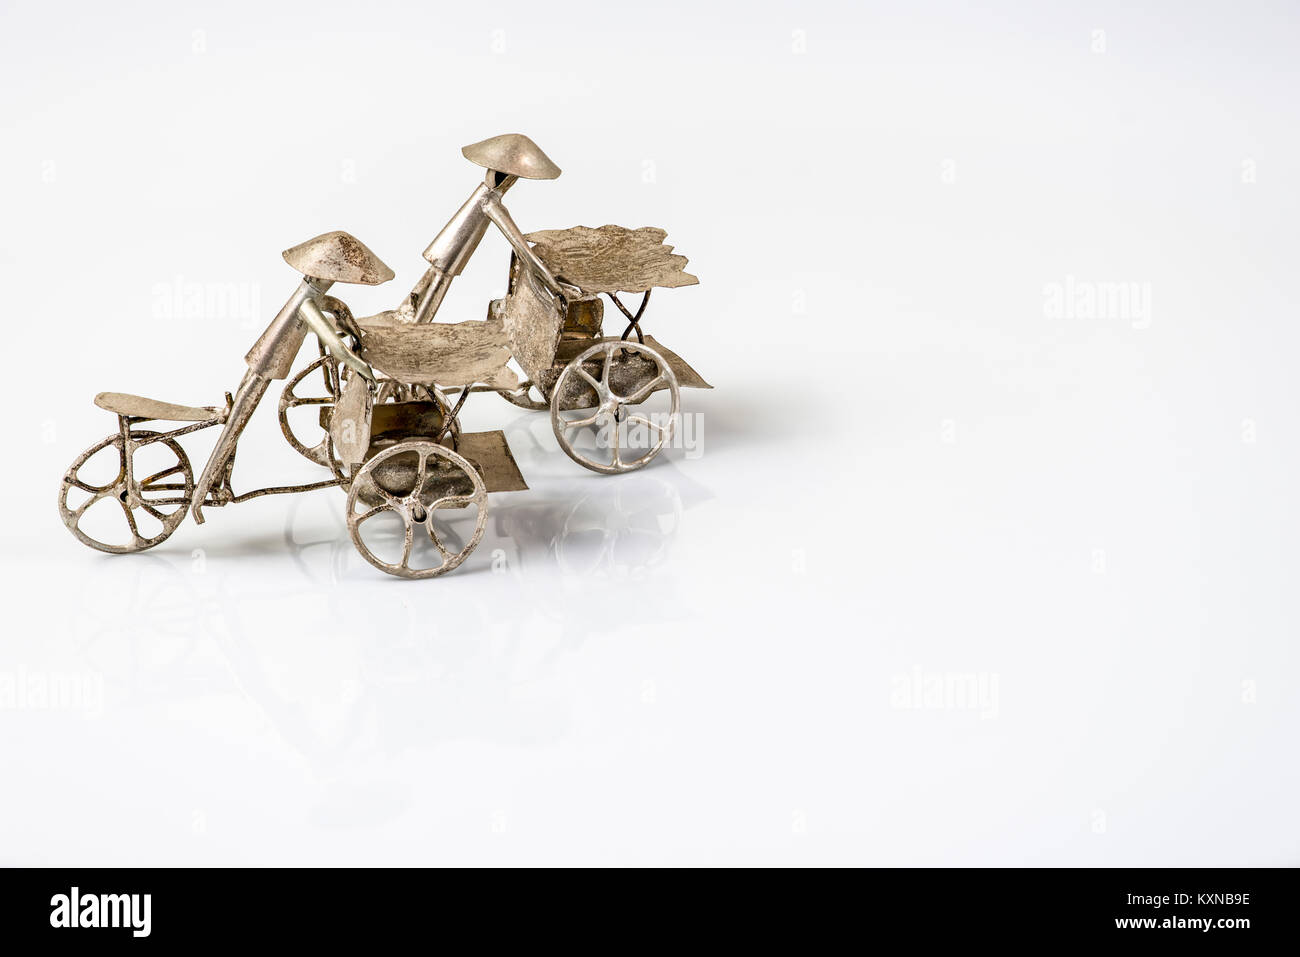 Far eastern three wheel bicycle figurines isolated on white background made of metal - Stock Image